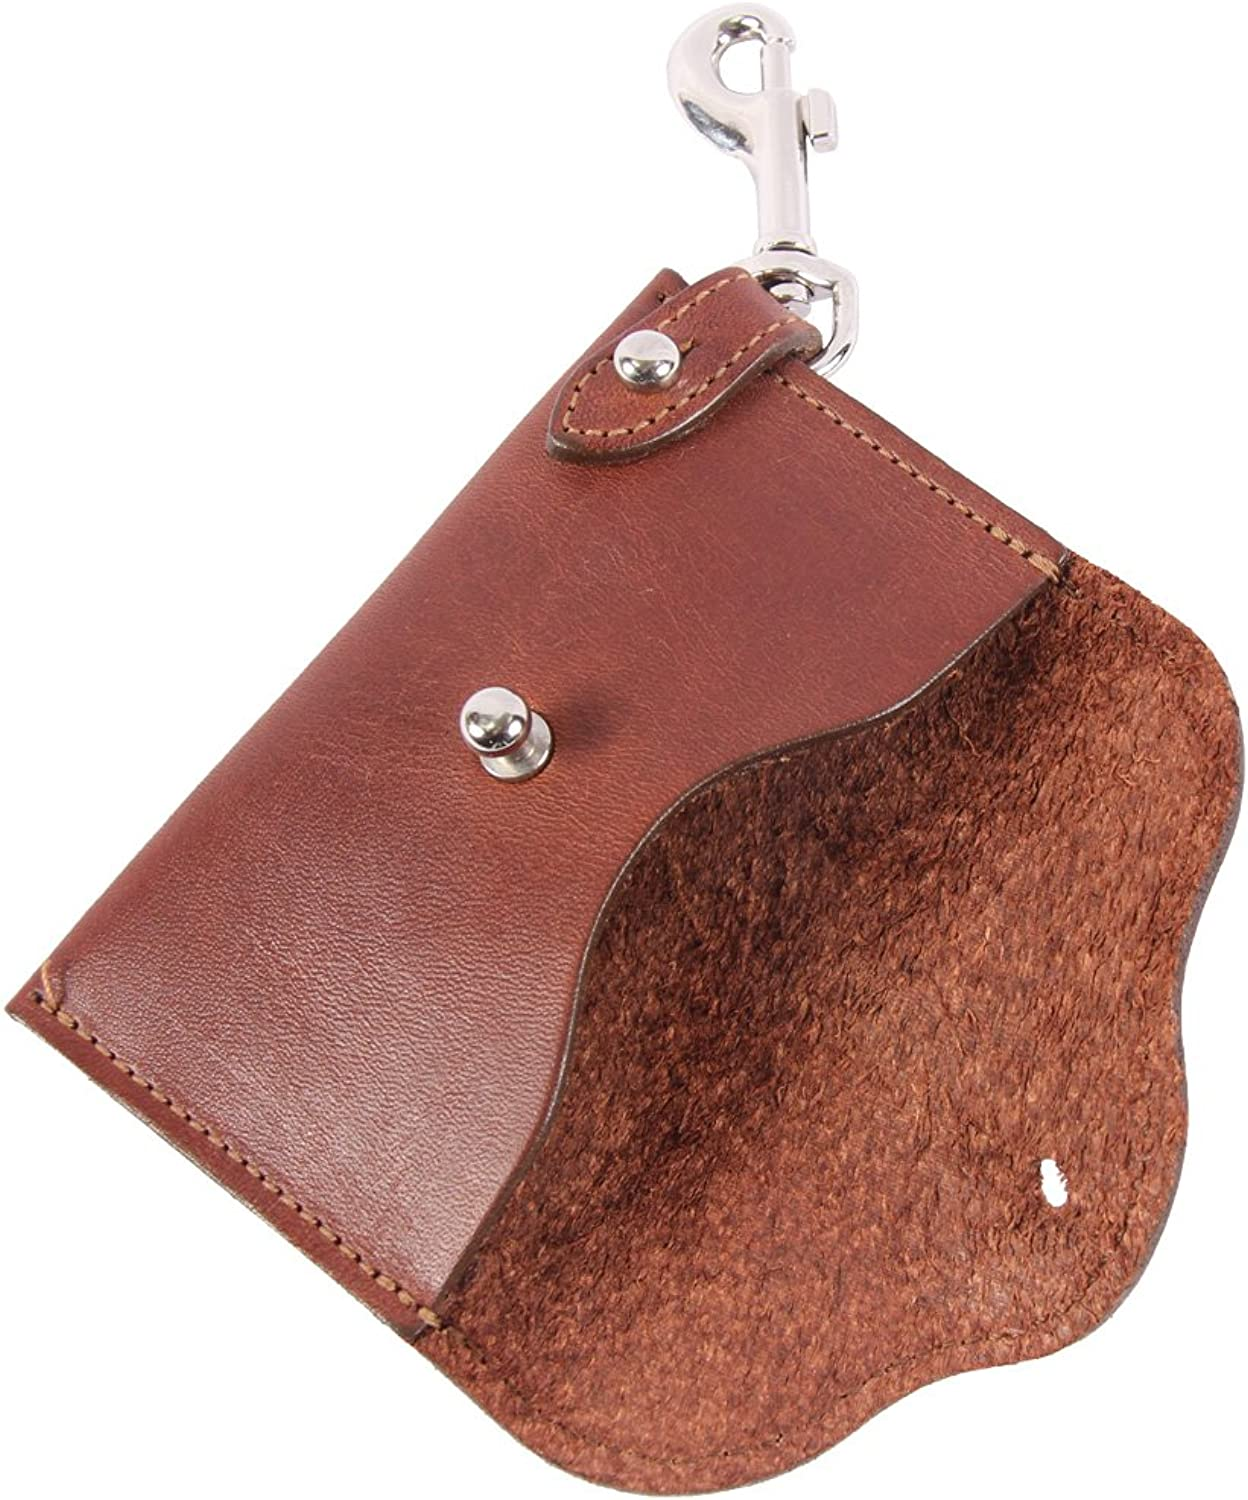 Leather Key Wallet Brown for Credit Cards Cash Snap USA Made